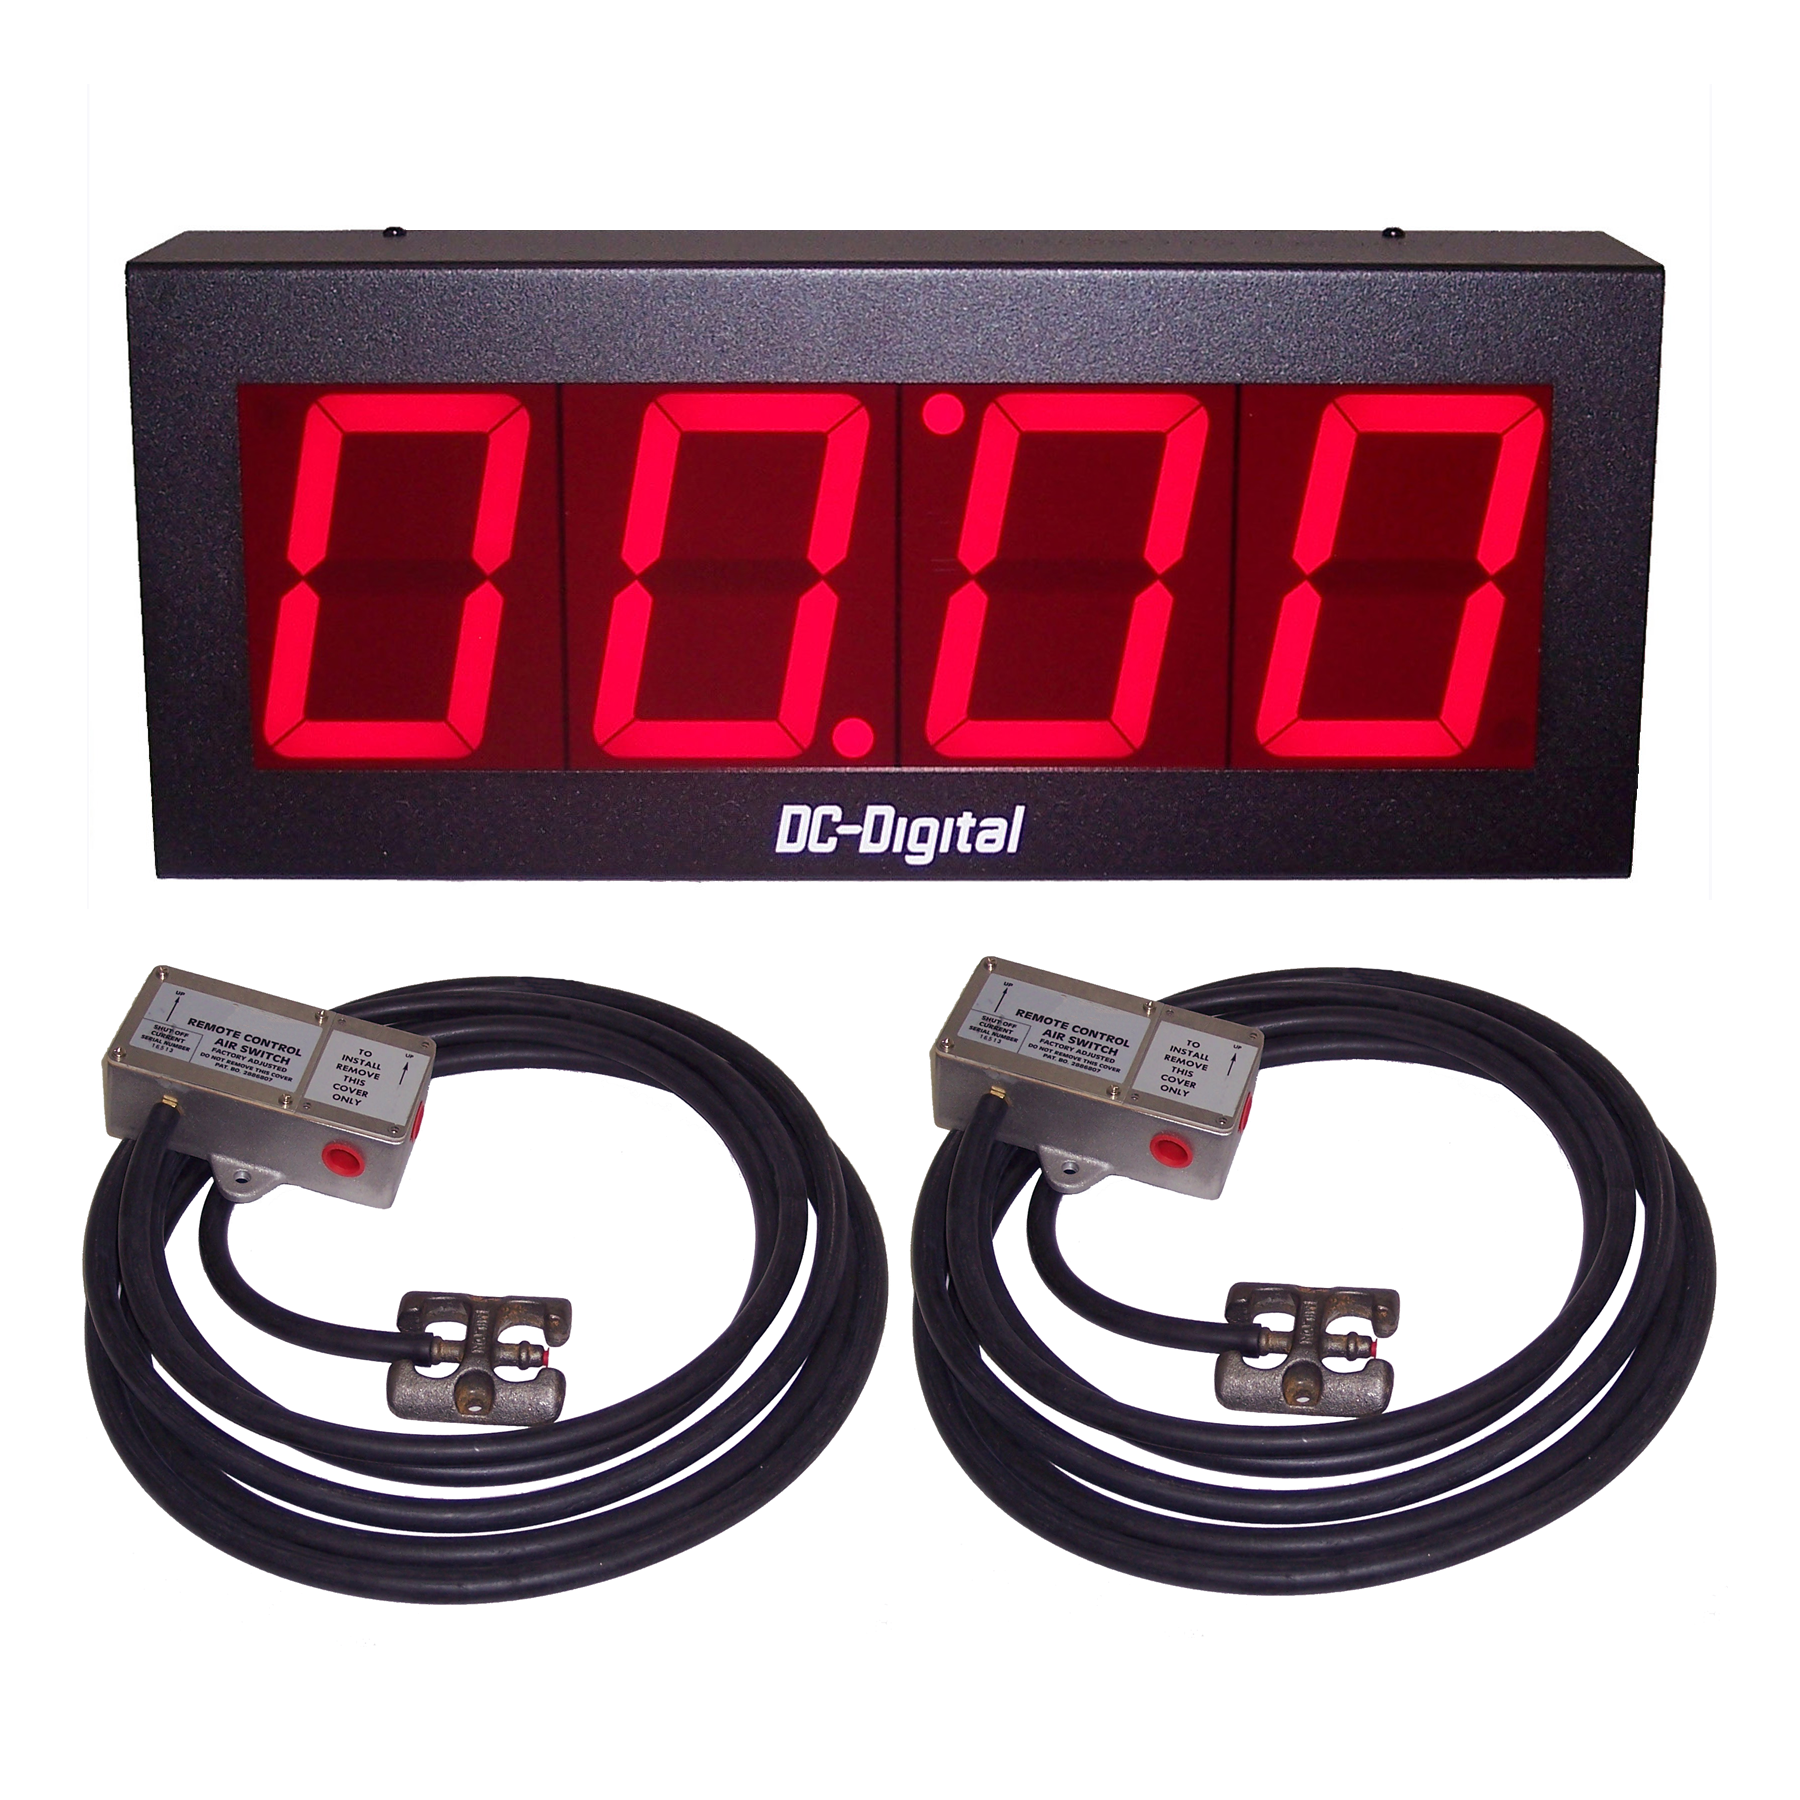 (DC-40T-UP-VEH) 4.0 Inch LED Digital, Pneumatic Switch Controlled, Count Up Timer-Clock (for pull through garages and drives)